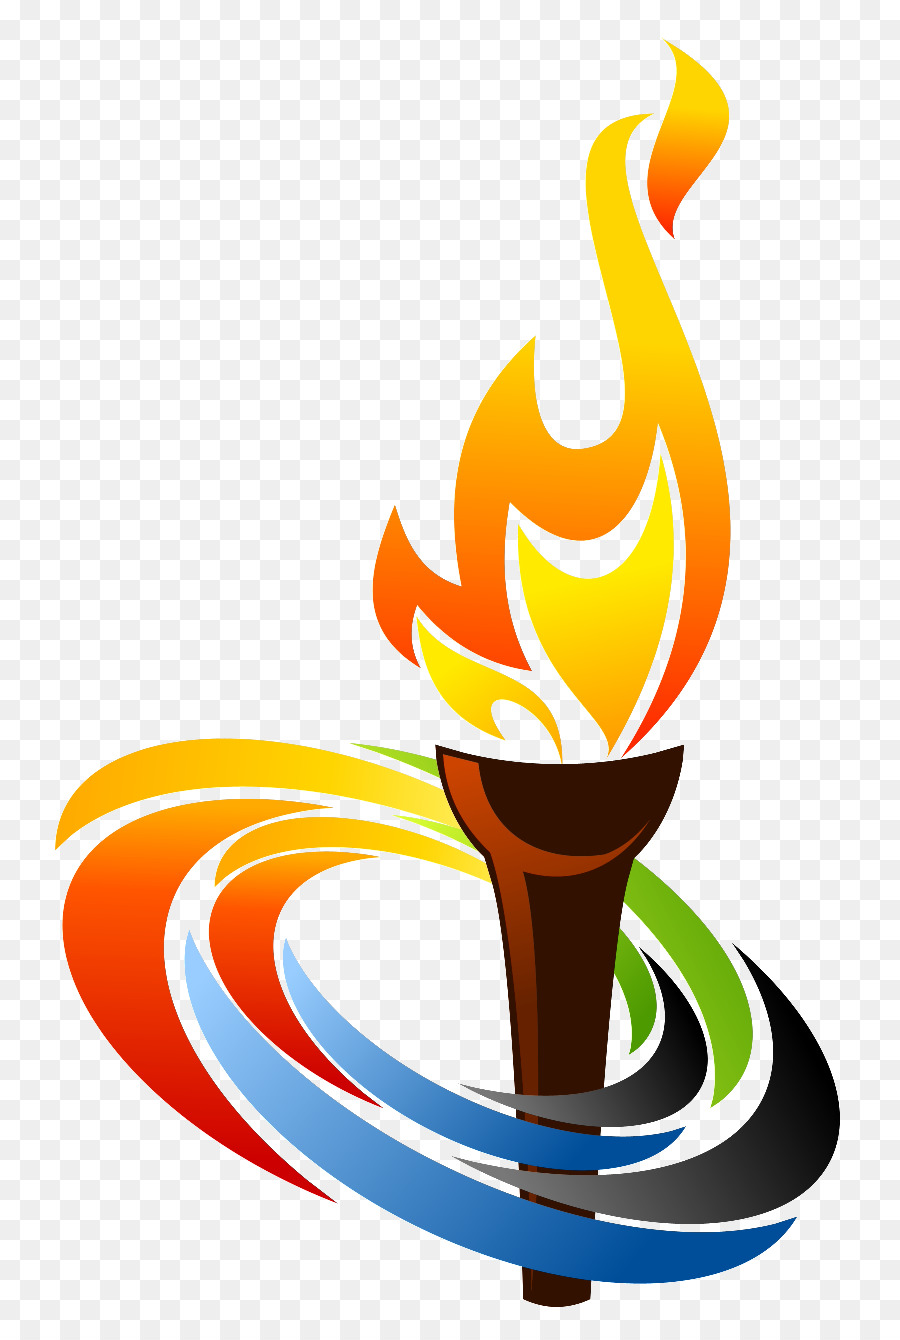 winter olympic games 2016 summer olympics 2018 winter olympics torch rh kisspng com winter olympic clip art